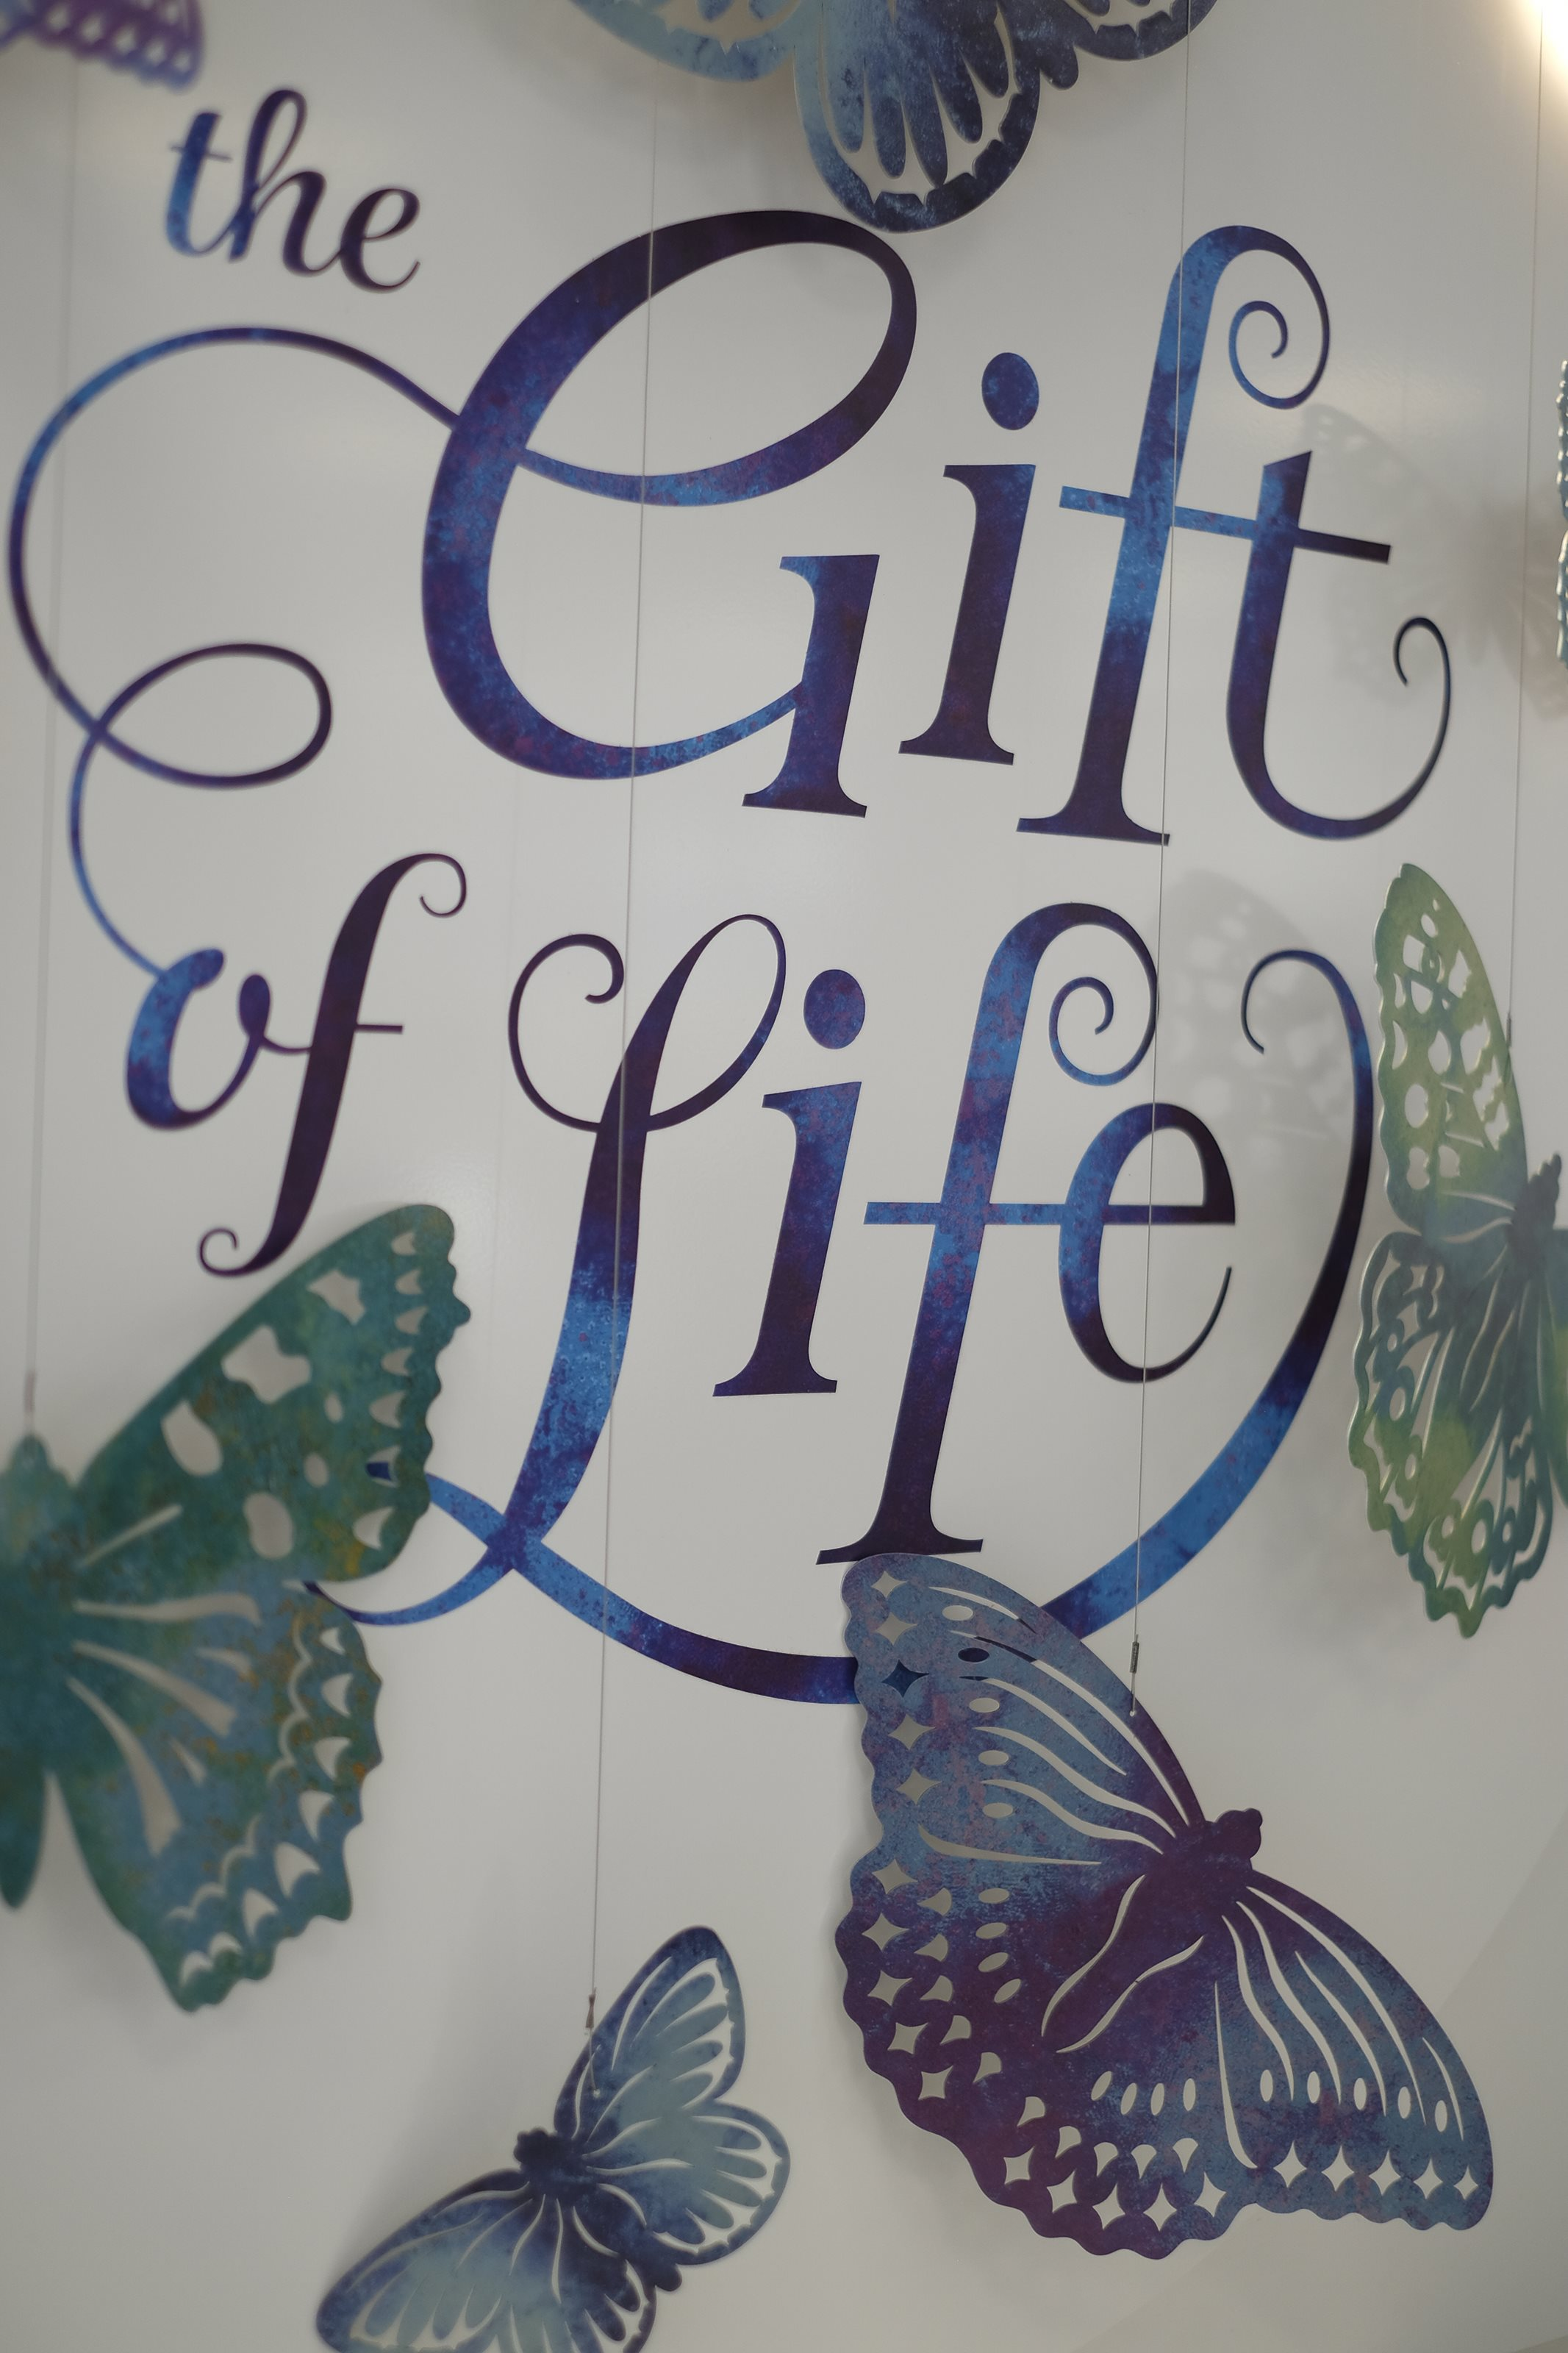 THE GIFT OF LIFE - 'A KALEIDOSCOPE OF BUTTERFLIES'